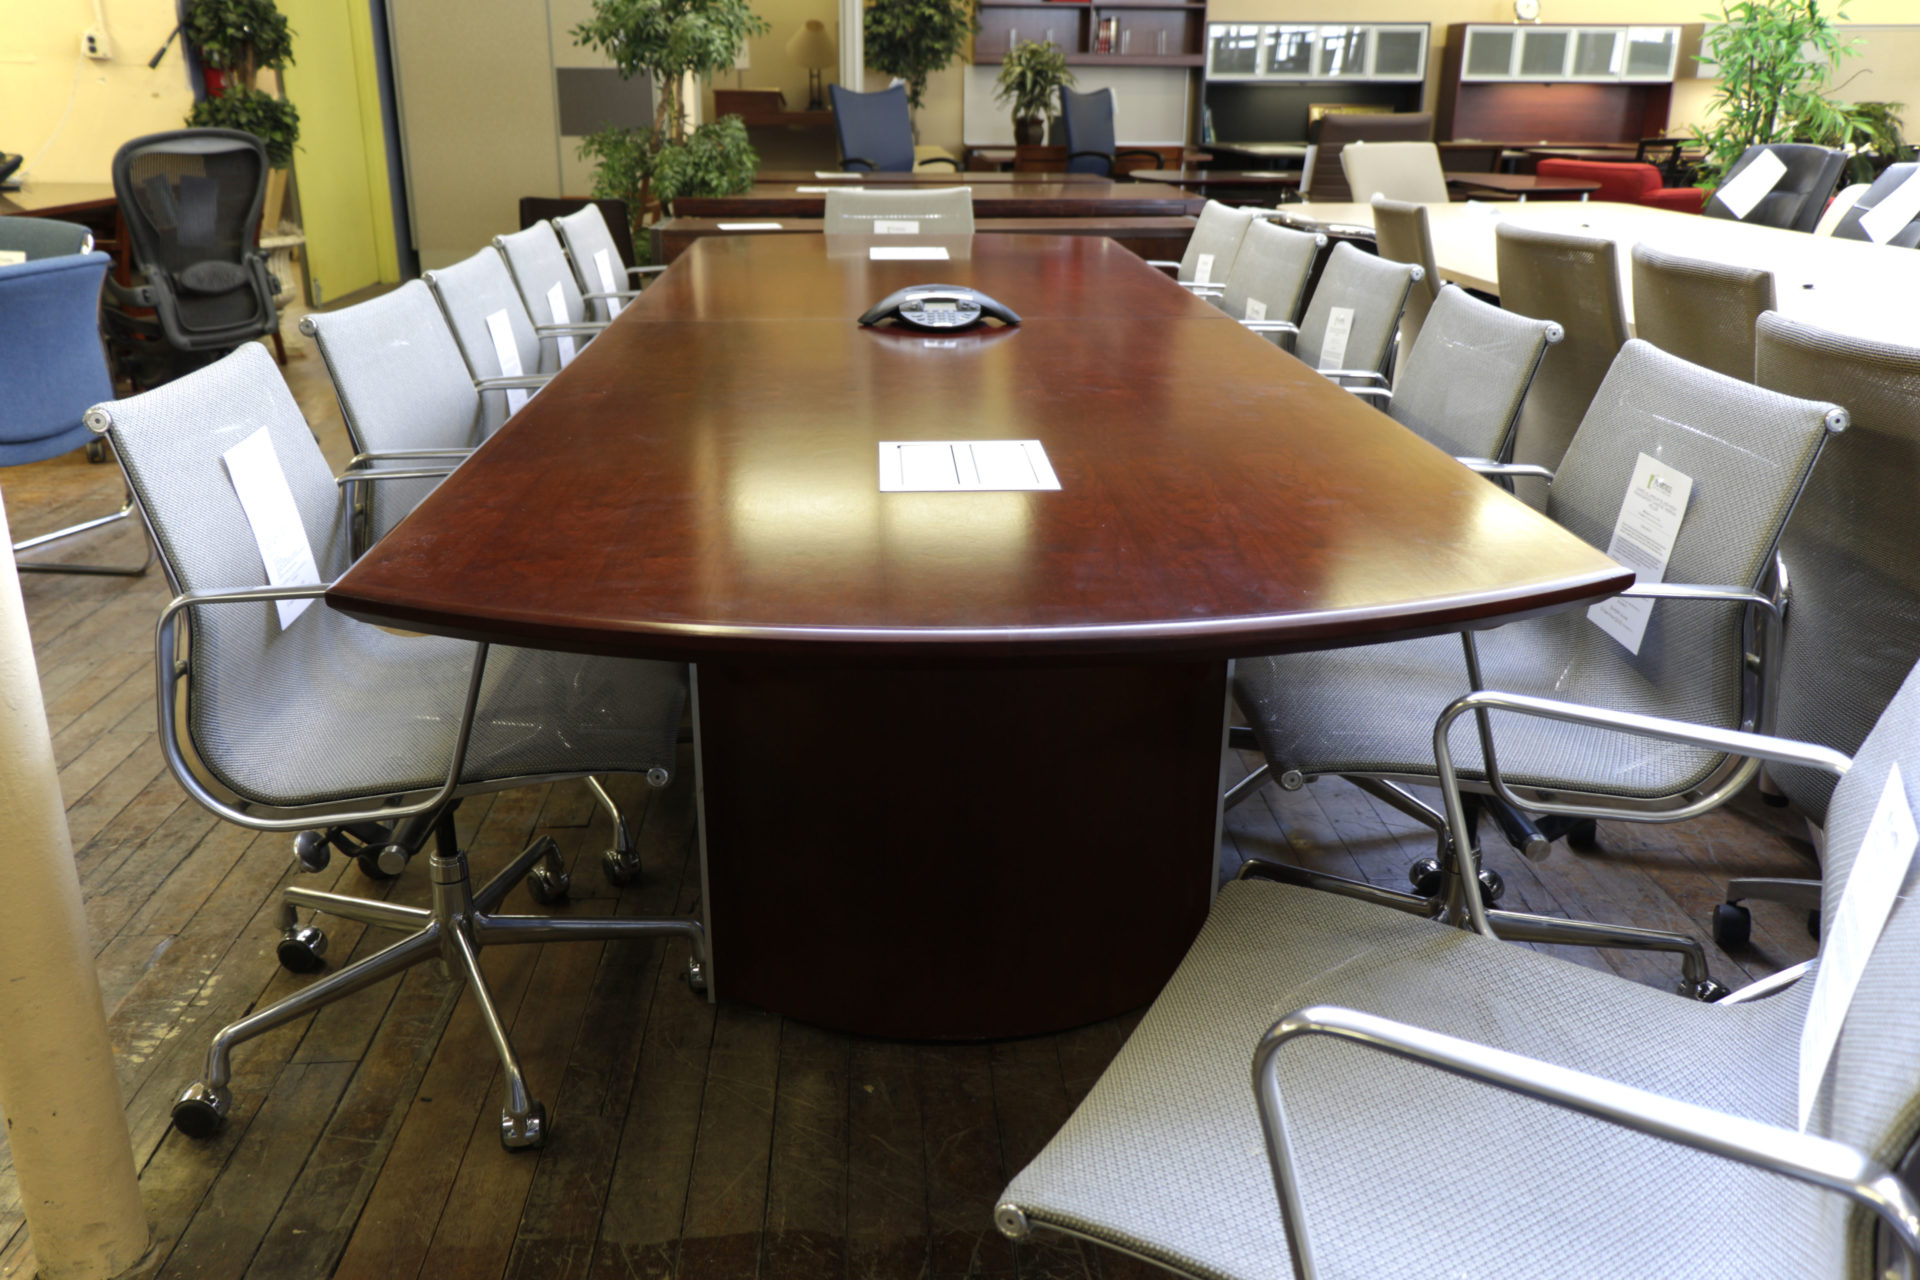 Kimball 12′ Cherry Conference Table with TeleData Forums